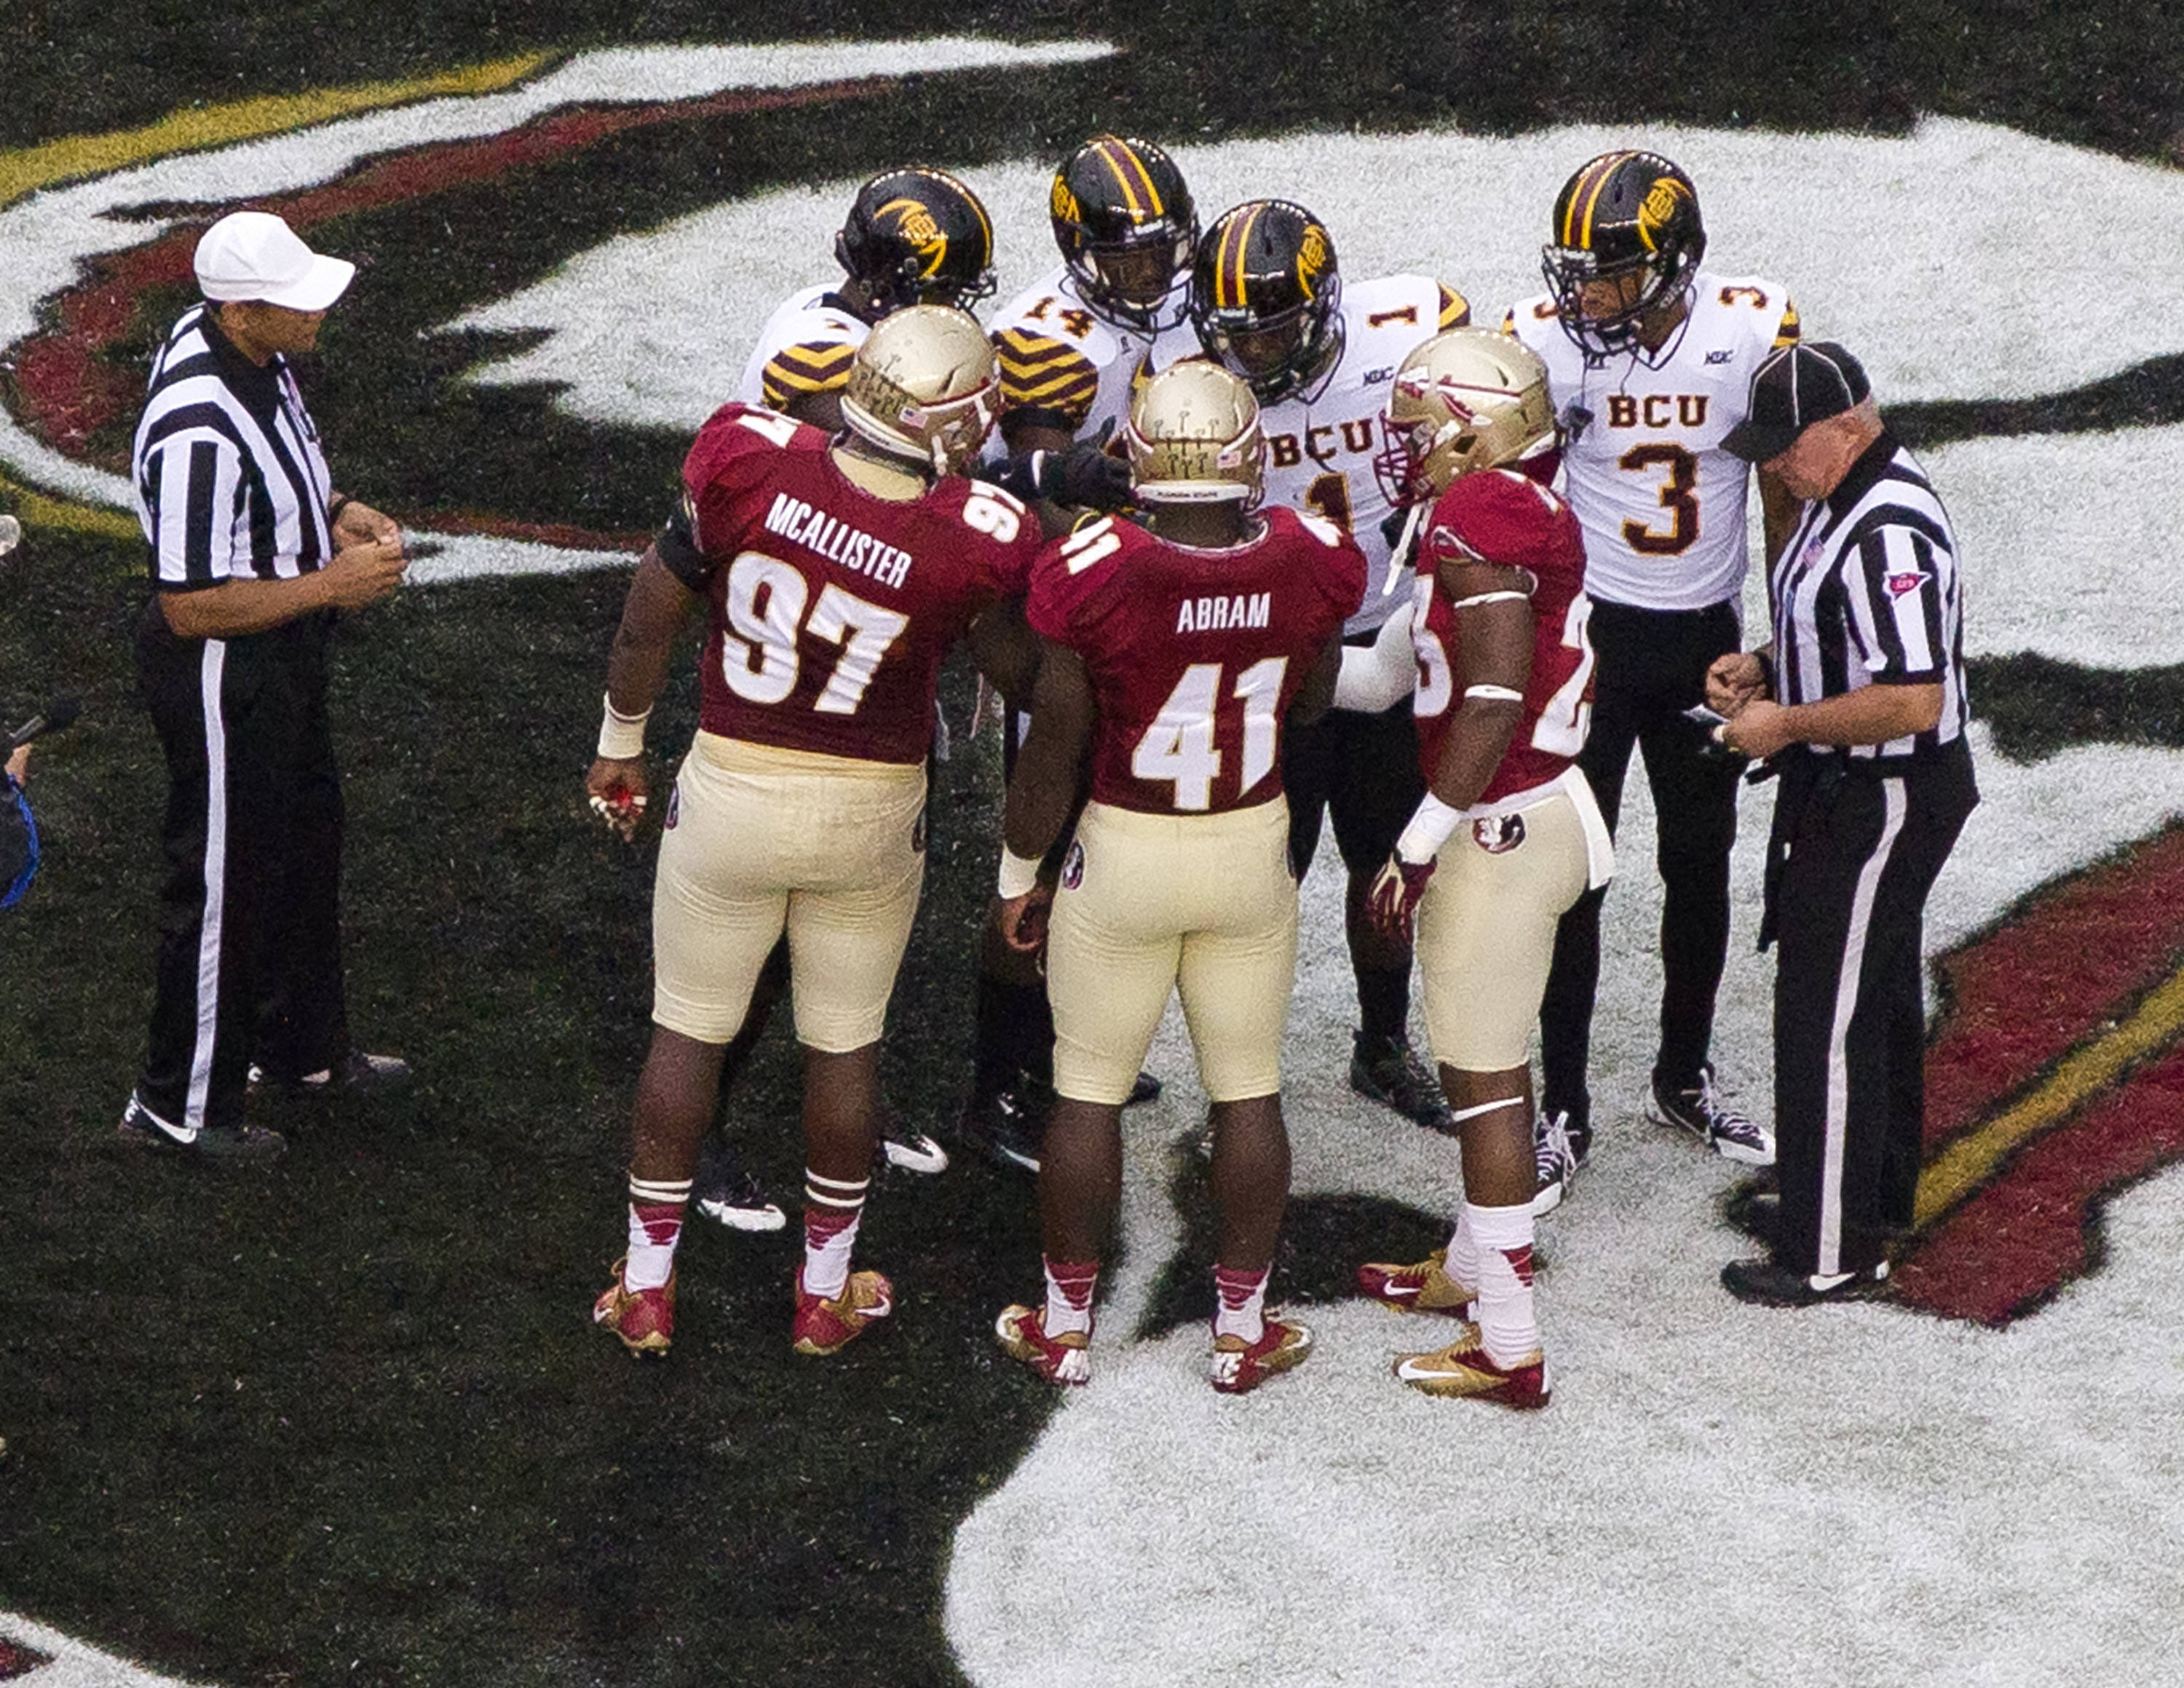 Demonte McAllister (97), Chad Abram (41), Gerald Demps (23), FSU vs Bethune-Cookman,  9-21-13, (Photo by Steve Musco)